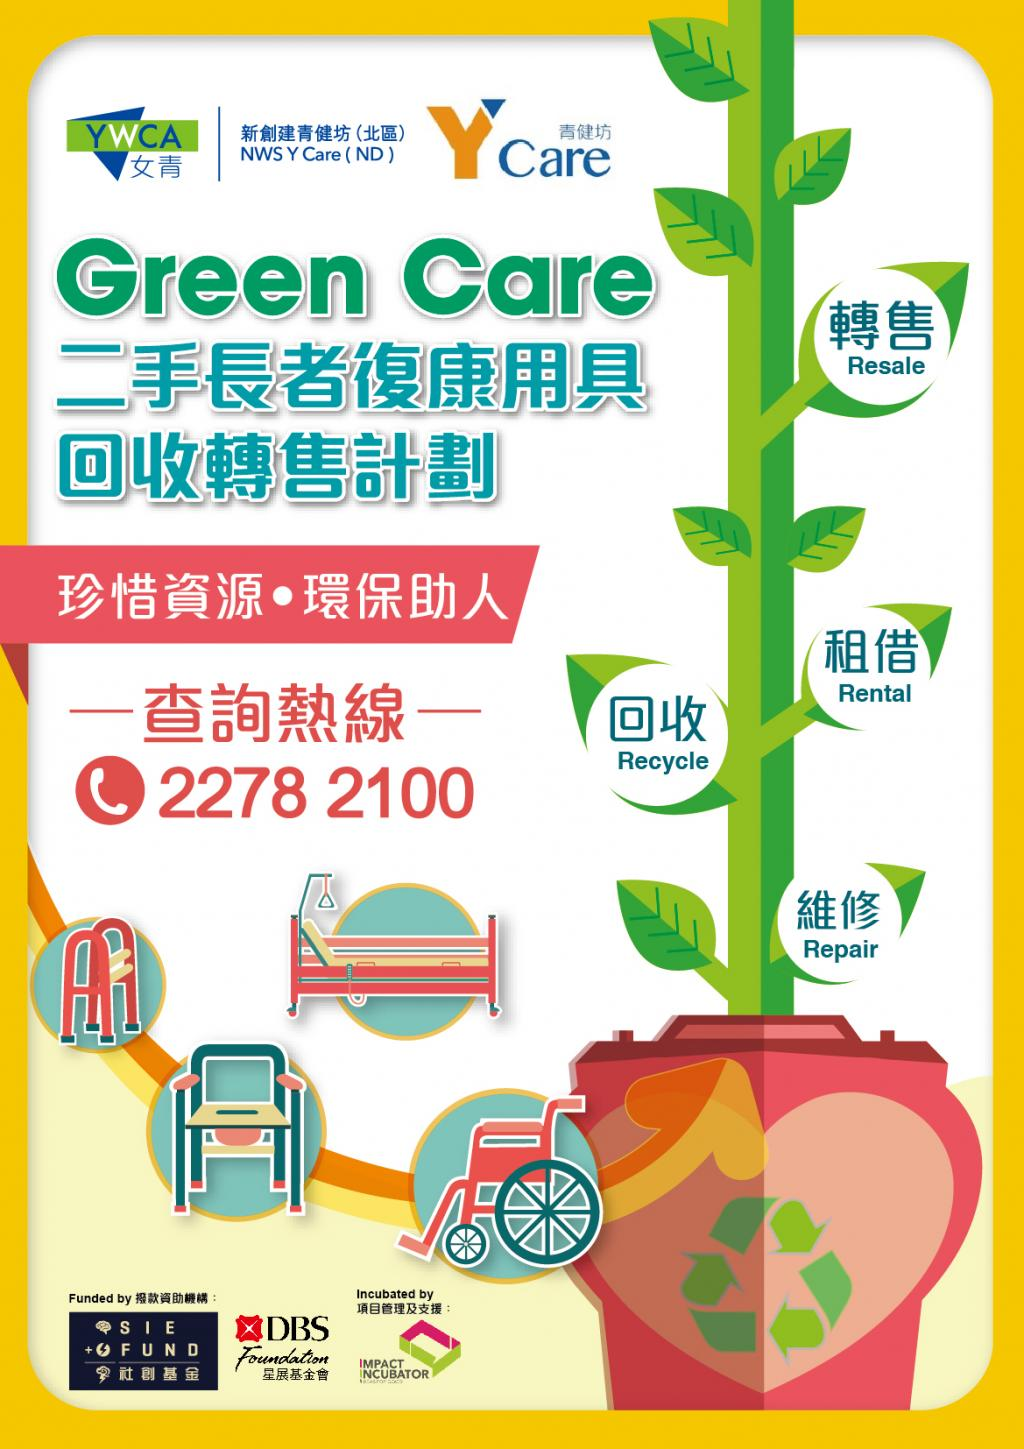 Green Care: new service to recycle elder rehab products